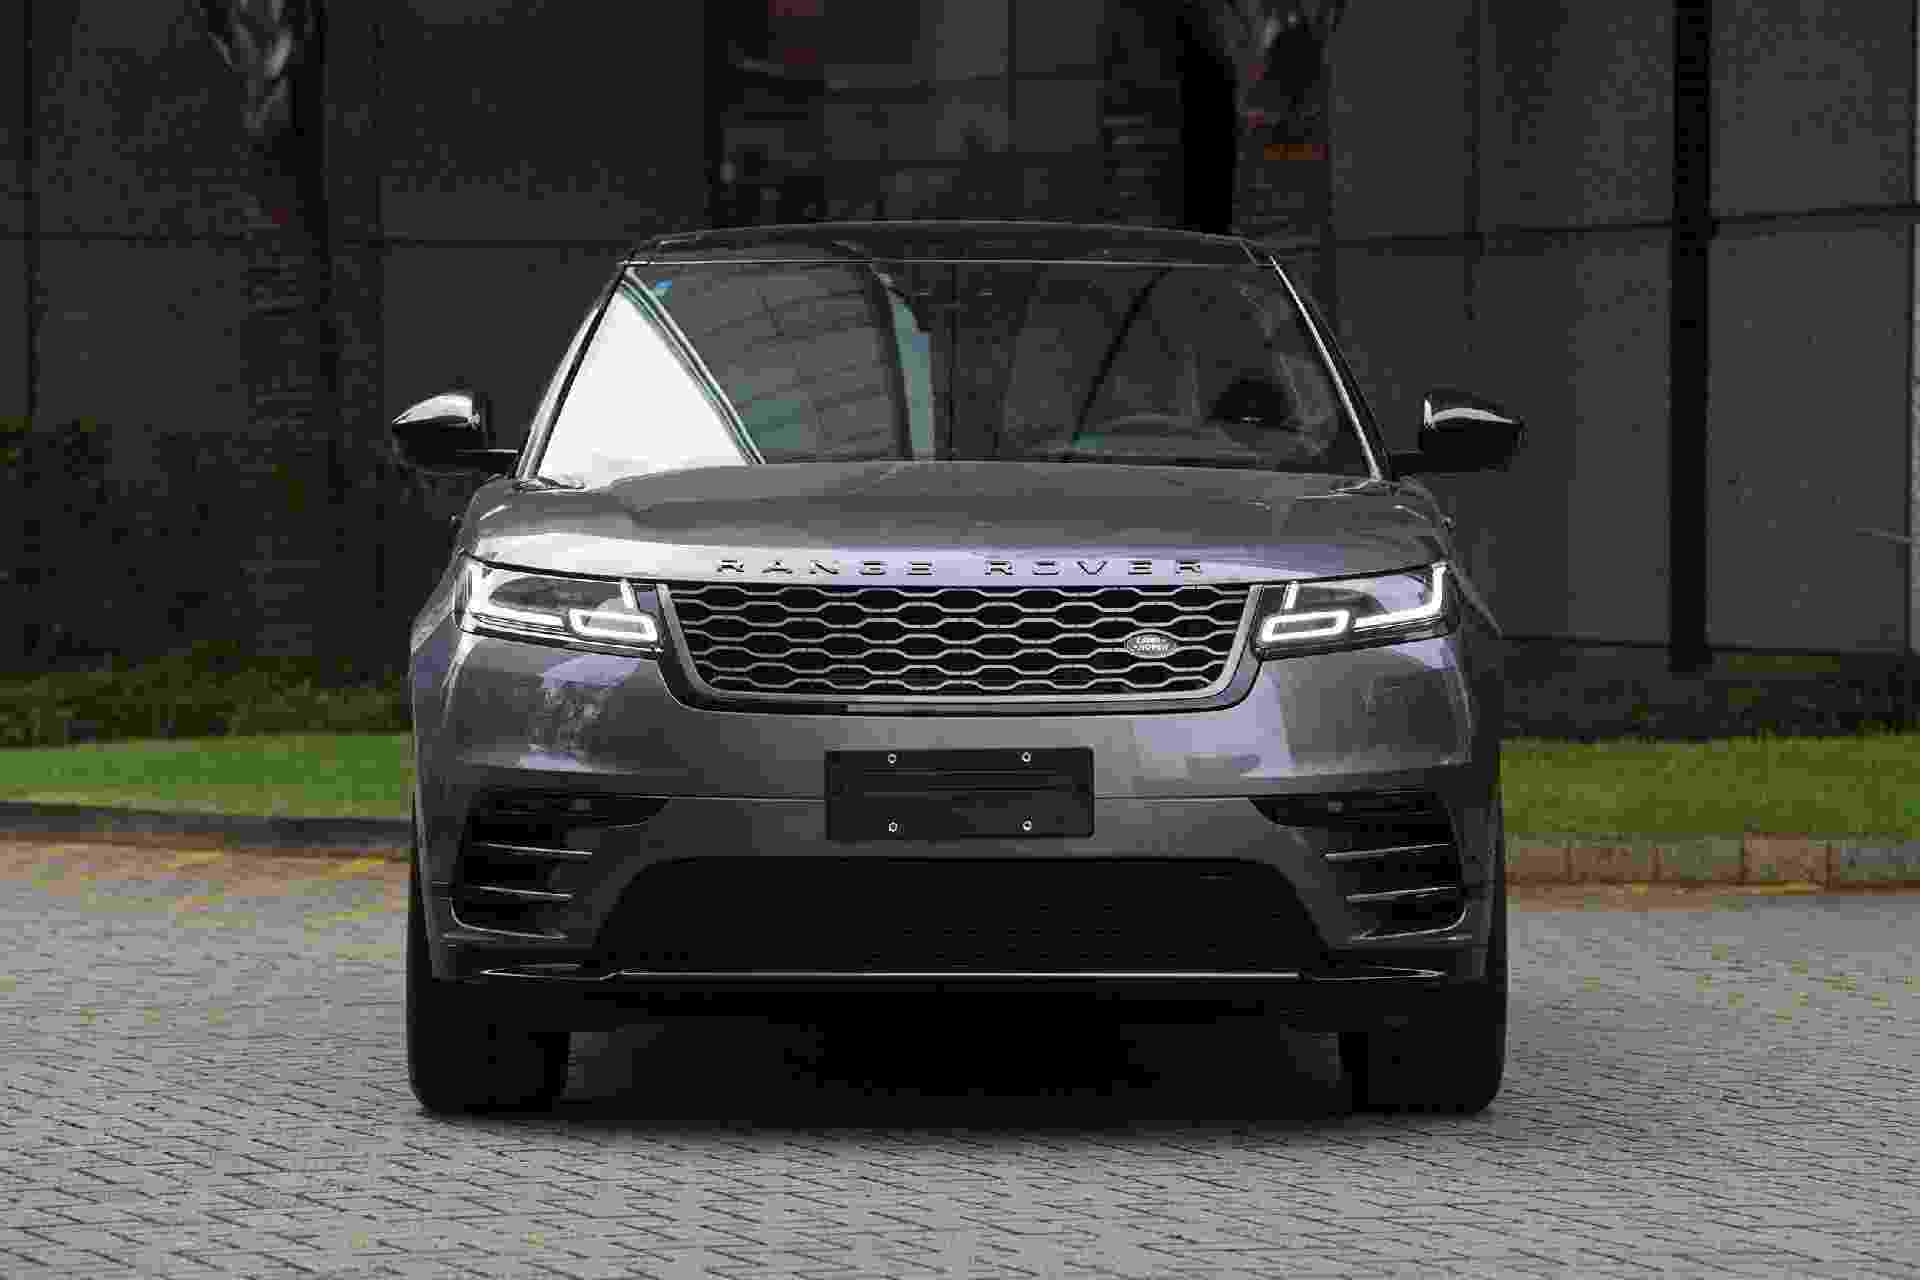 Range Rover Velar First Edition - Murilo Góes/UOL